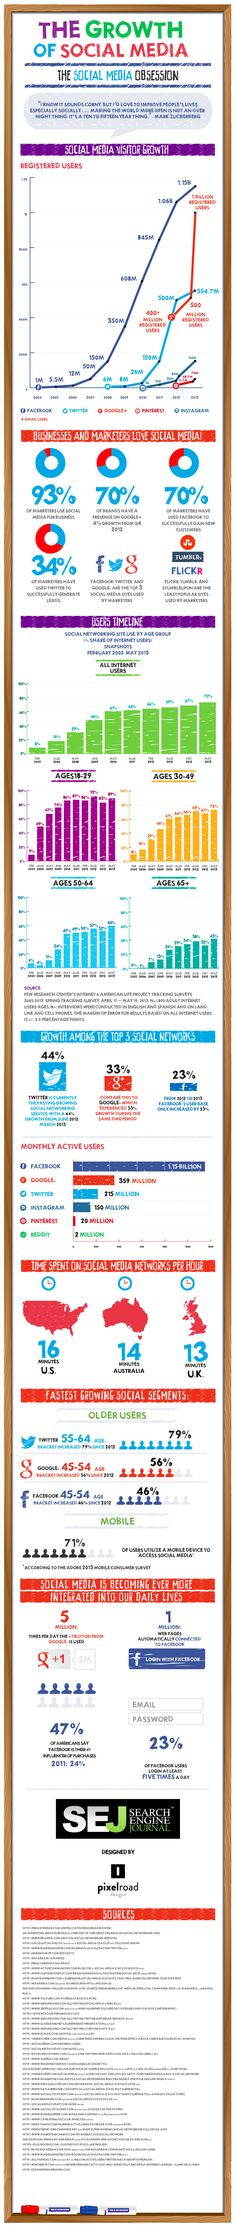 The growth of social media in 2013